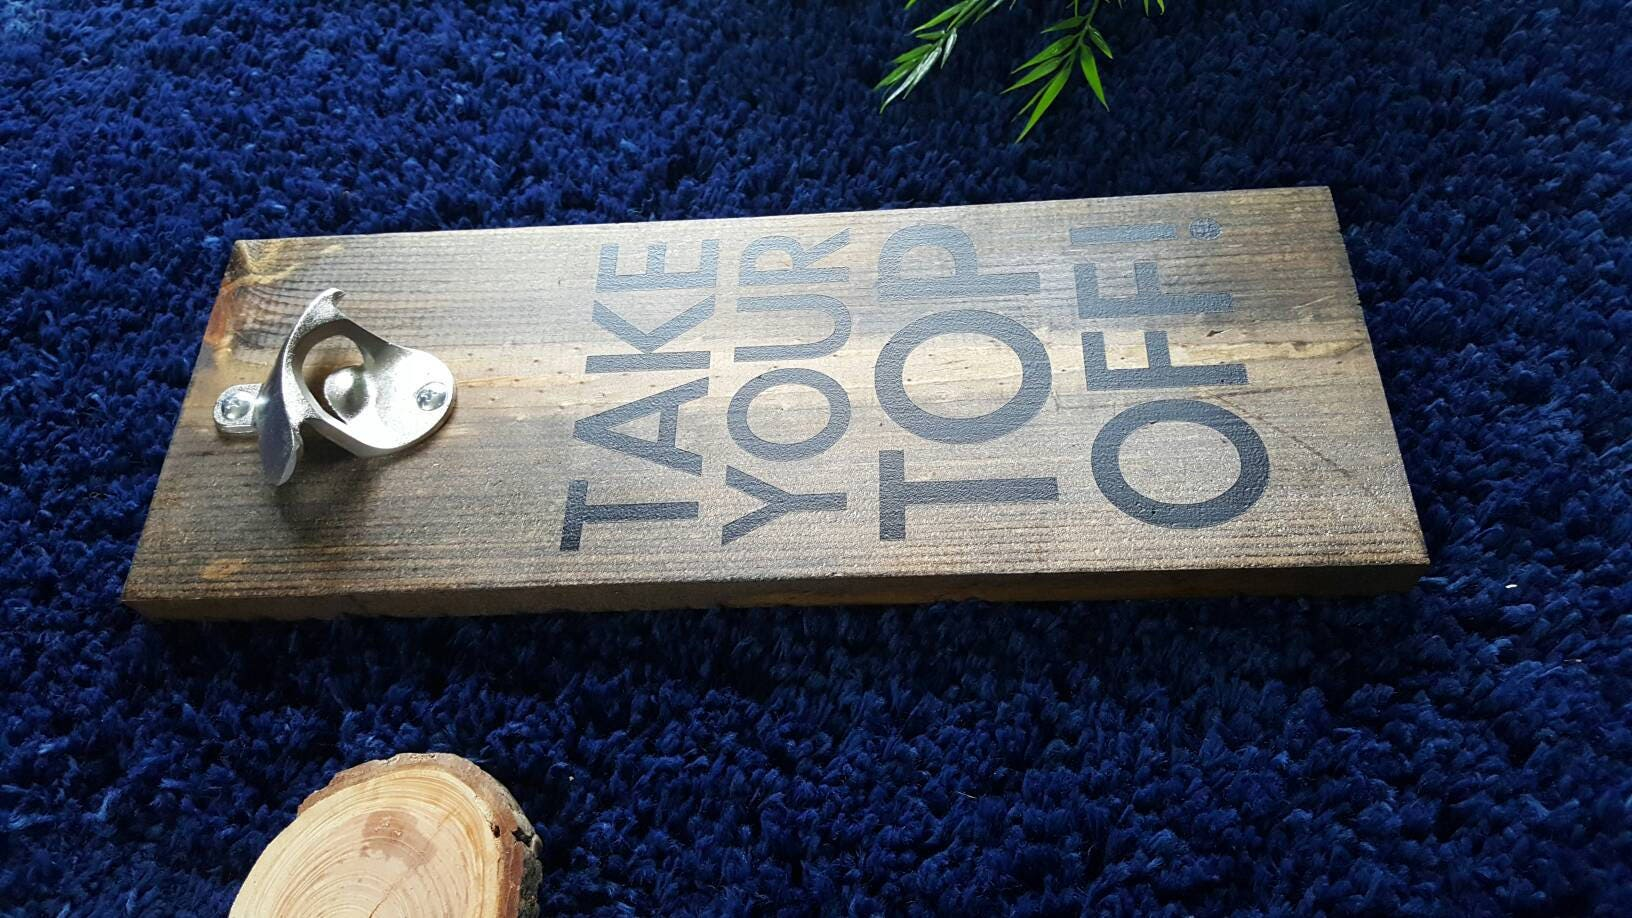 Take your top off rustic wood bottle opener rustic home decor take your top off rustic wood bottle opener rustic home decor wall mounted bottle opener gifts for him man cave husband amipublicfo Image collections